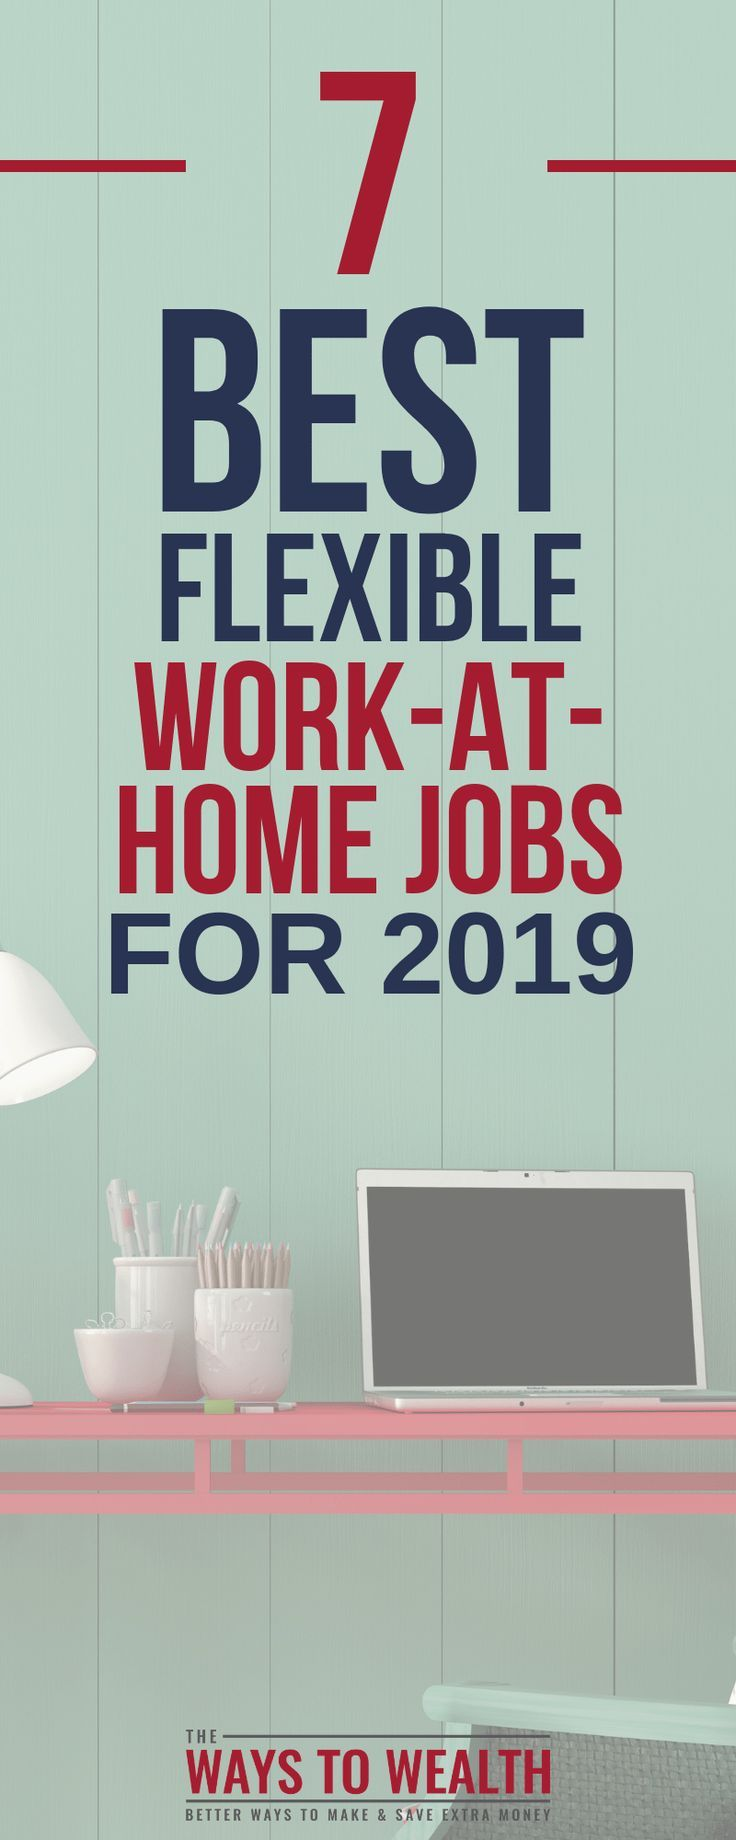 Best Flexible Work From Home Jobs for 2019 | Personal